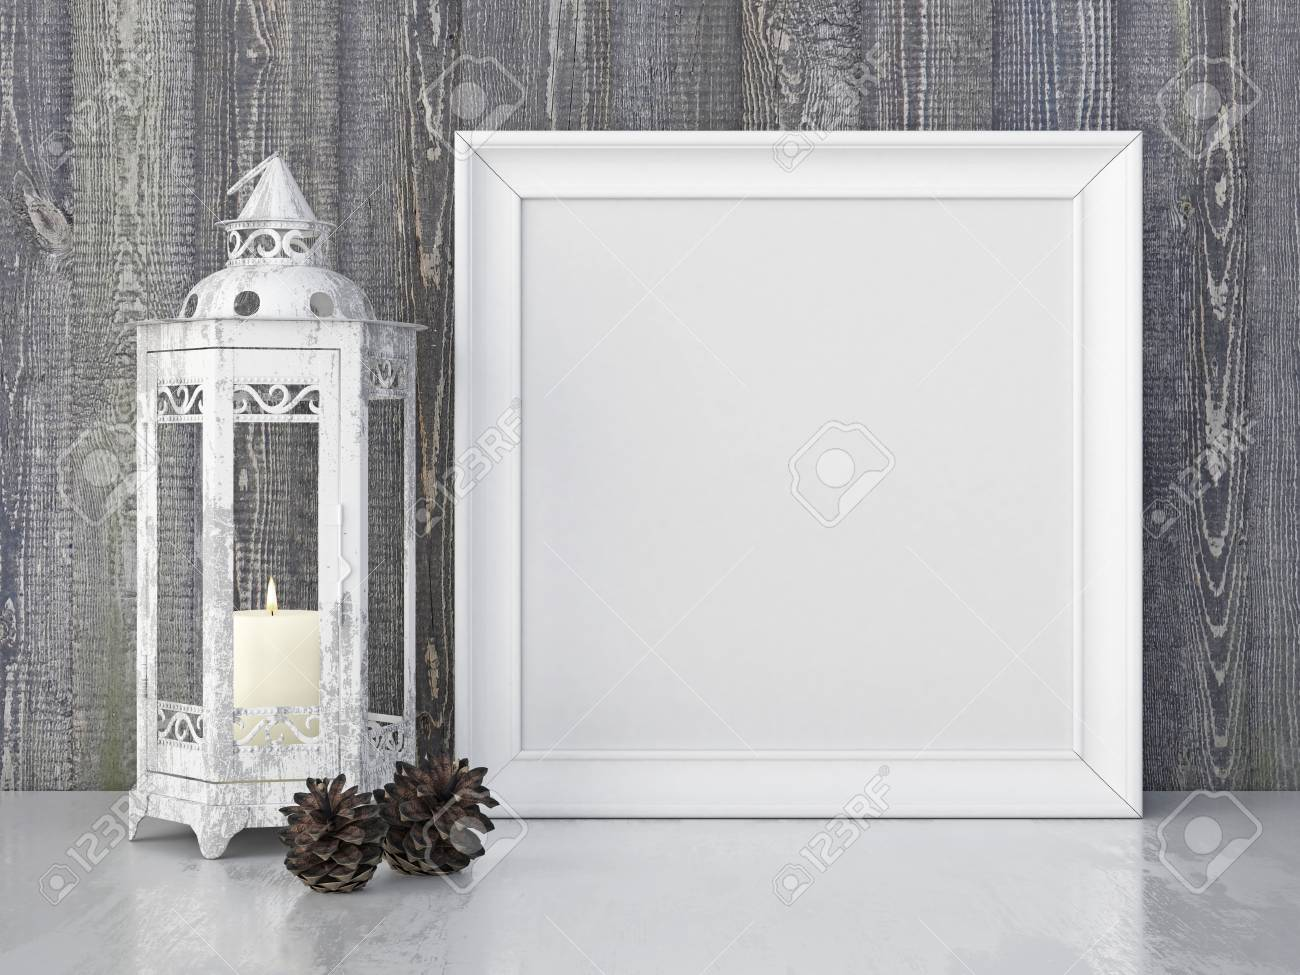 Vintage Interior Poster Mock Up With Square White Frame, Candle ...